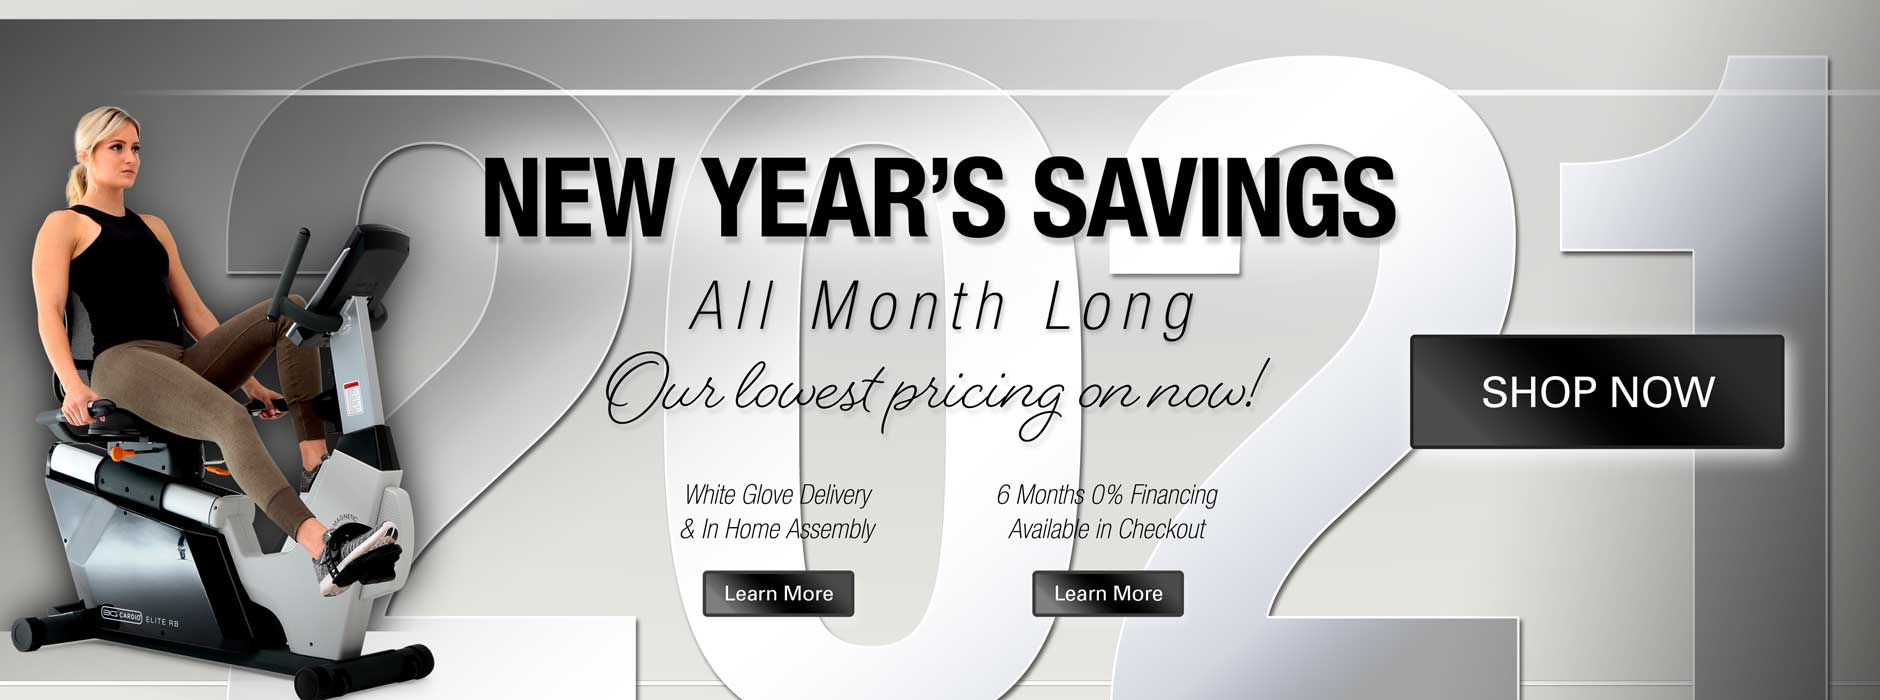 New Years Savings All Month Long